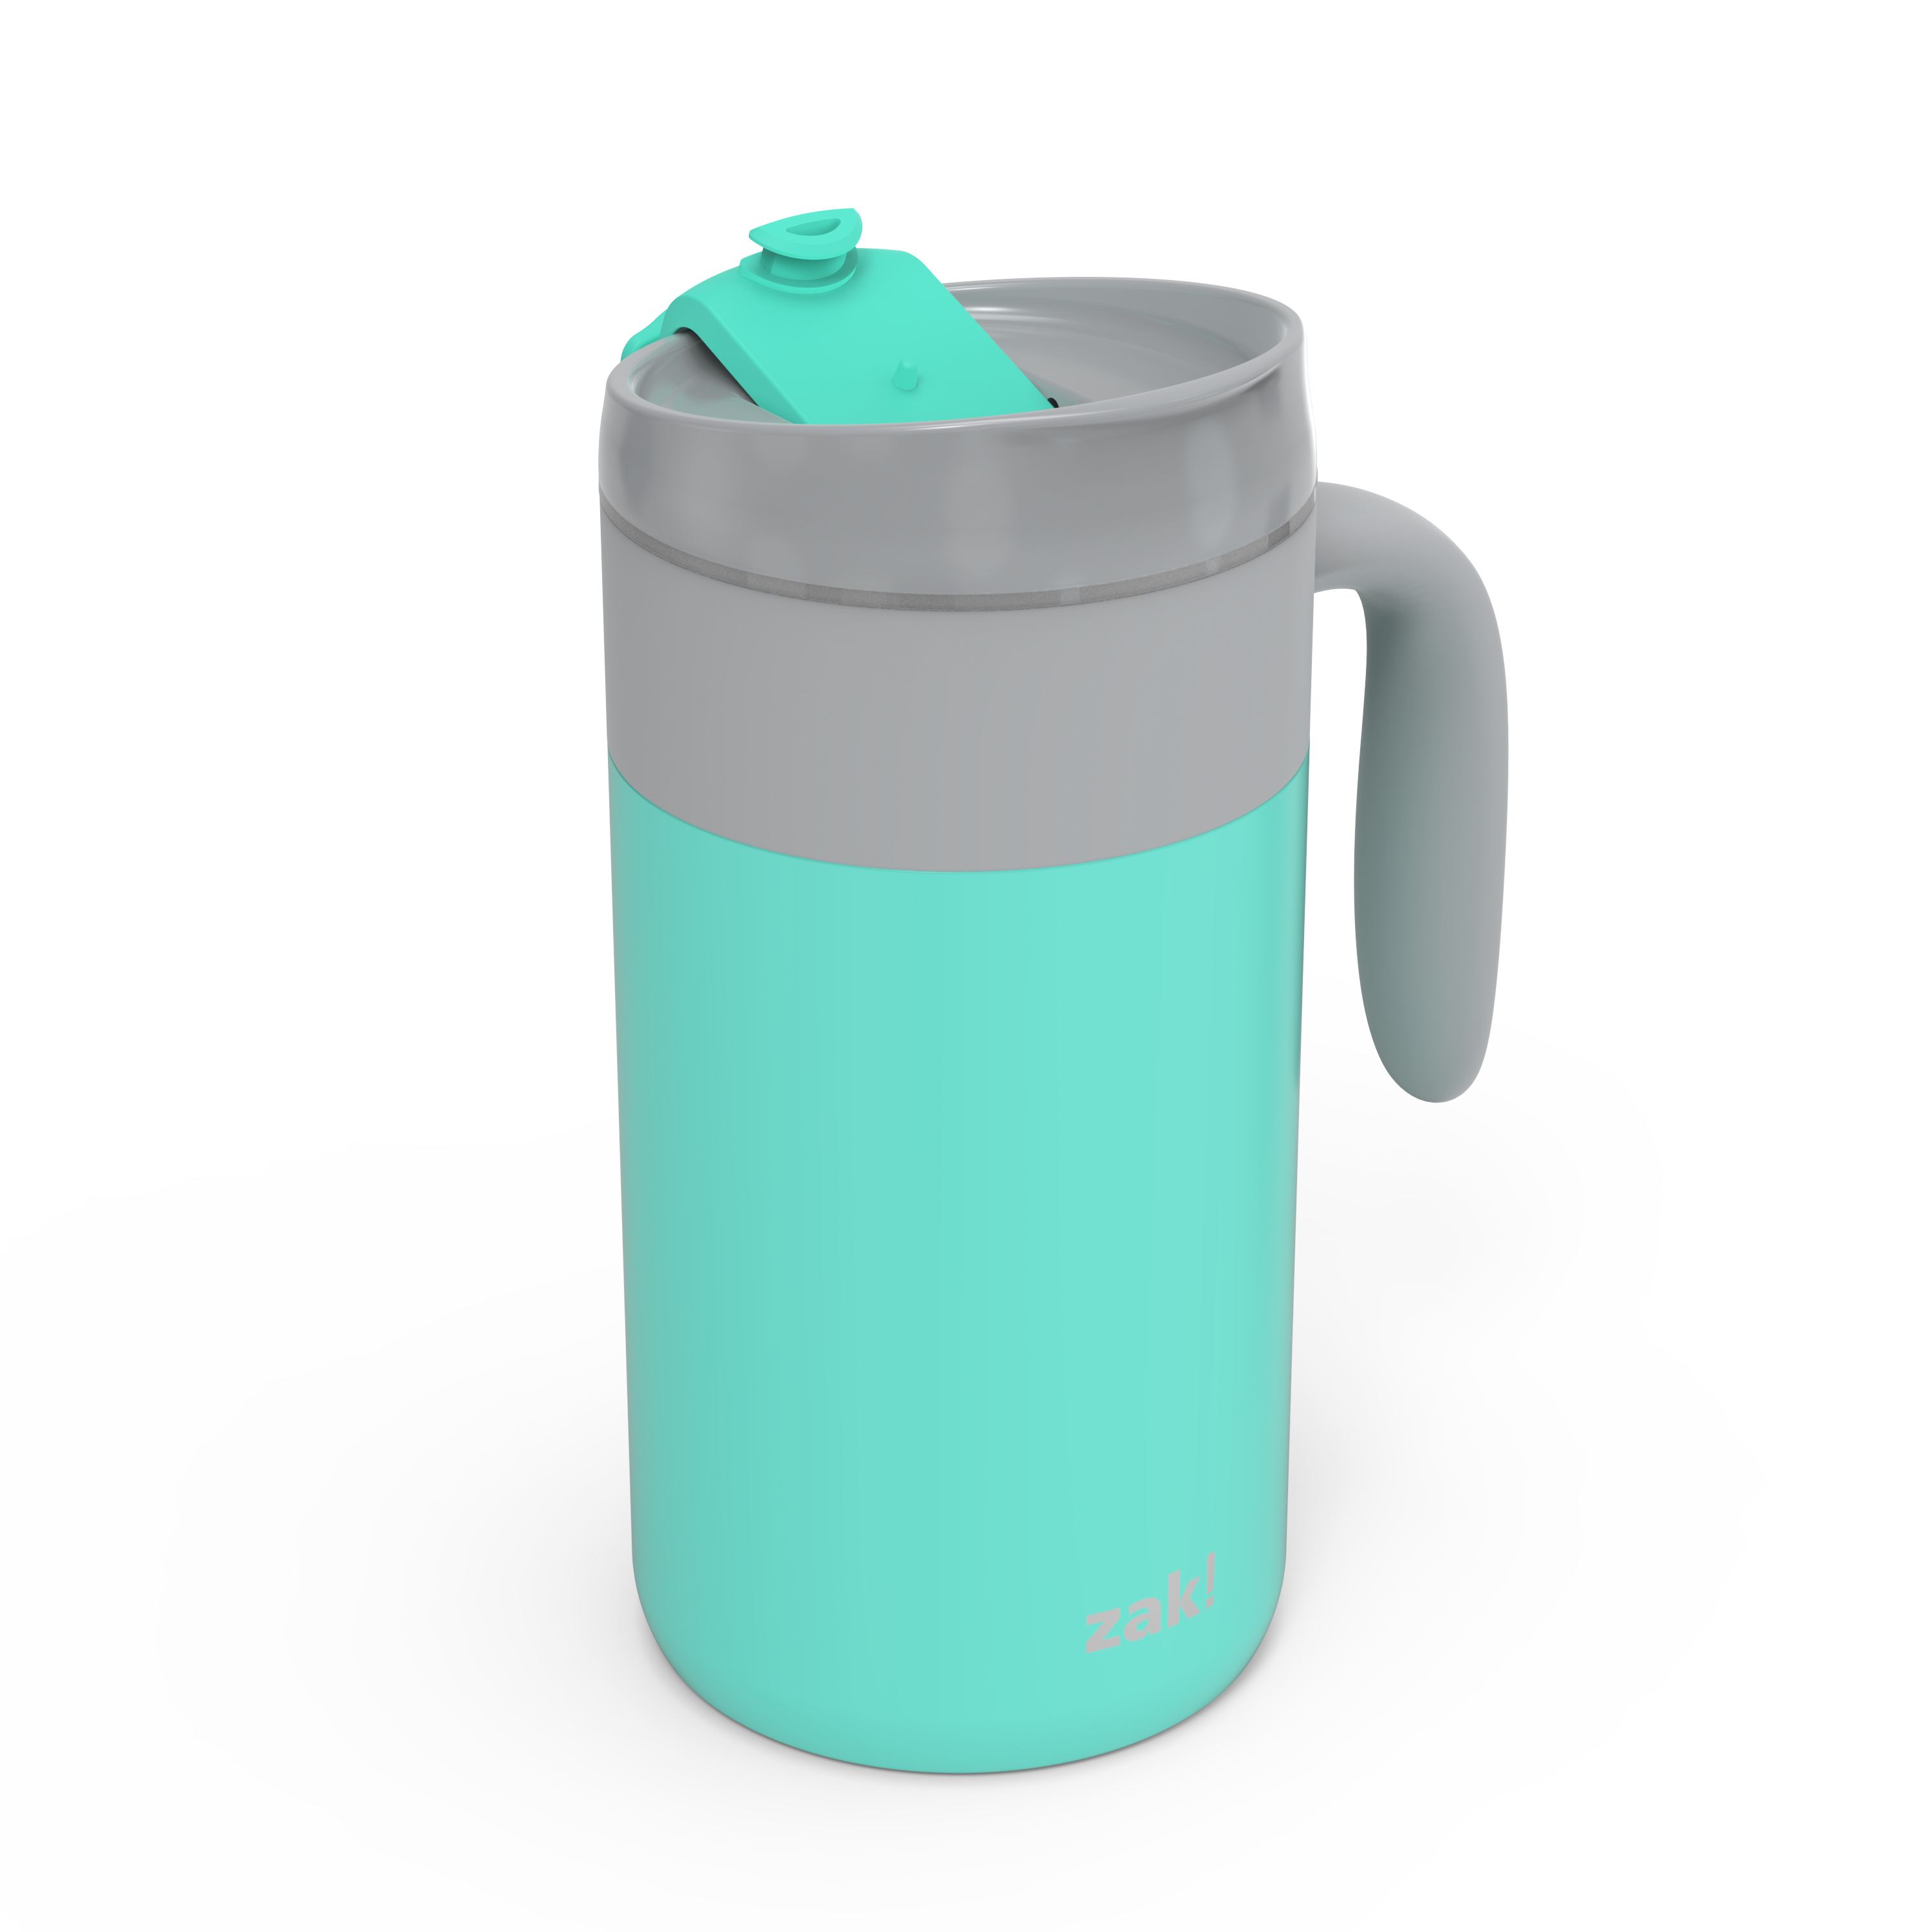 Aberdeen 20 ounce Vacuum Insulated Stainless Steel Tumbler, Green slideshow image 3